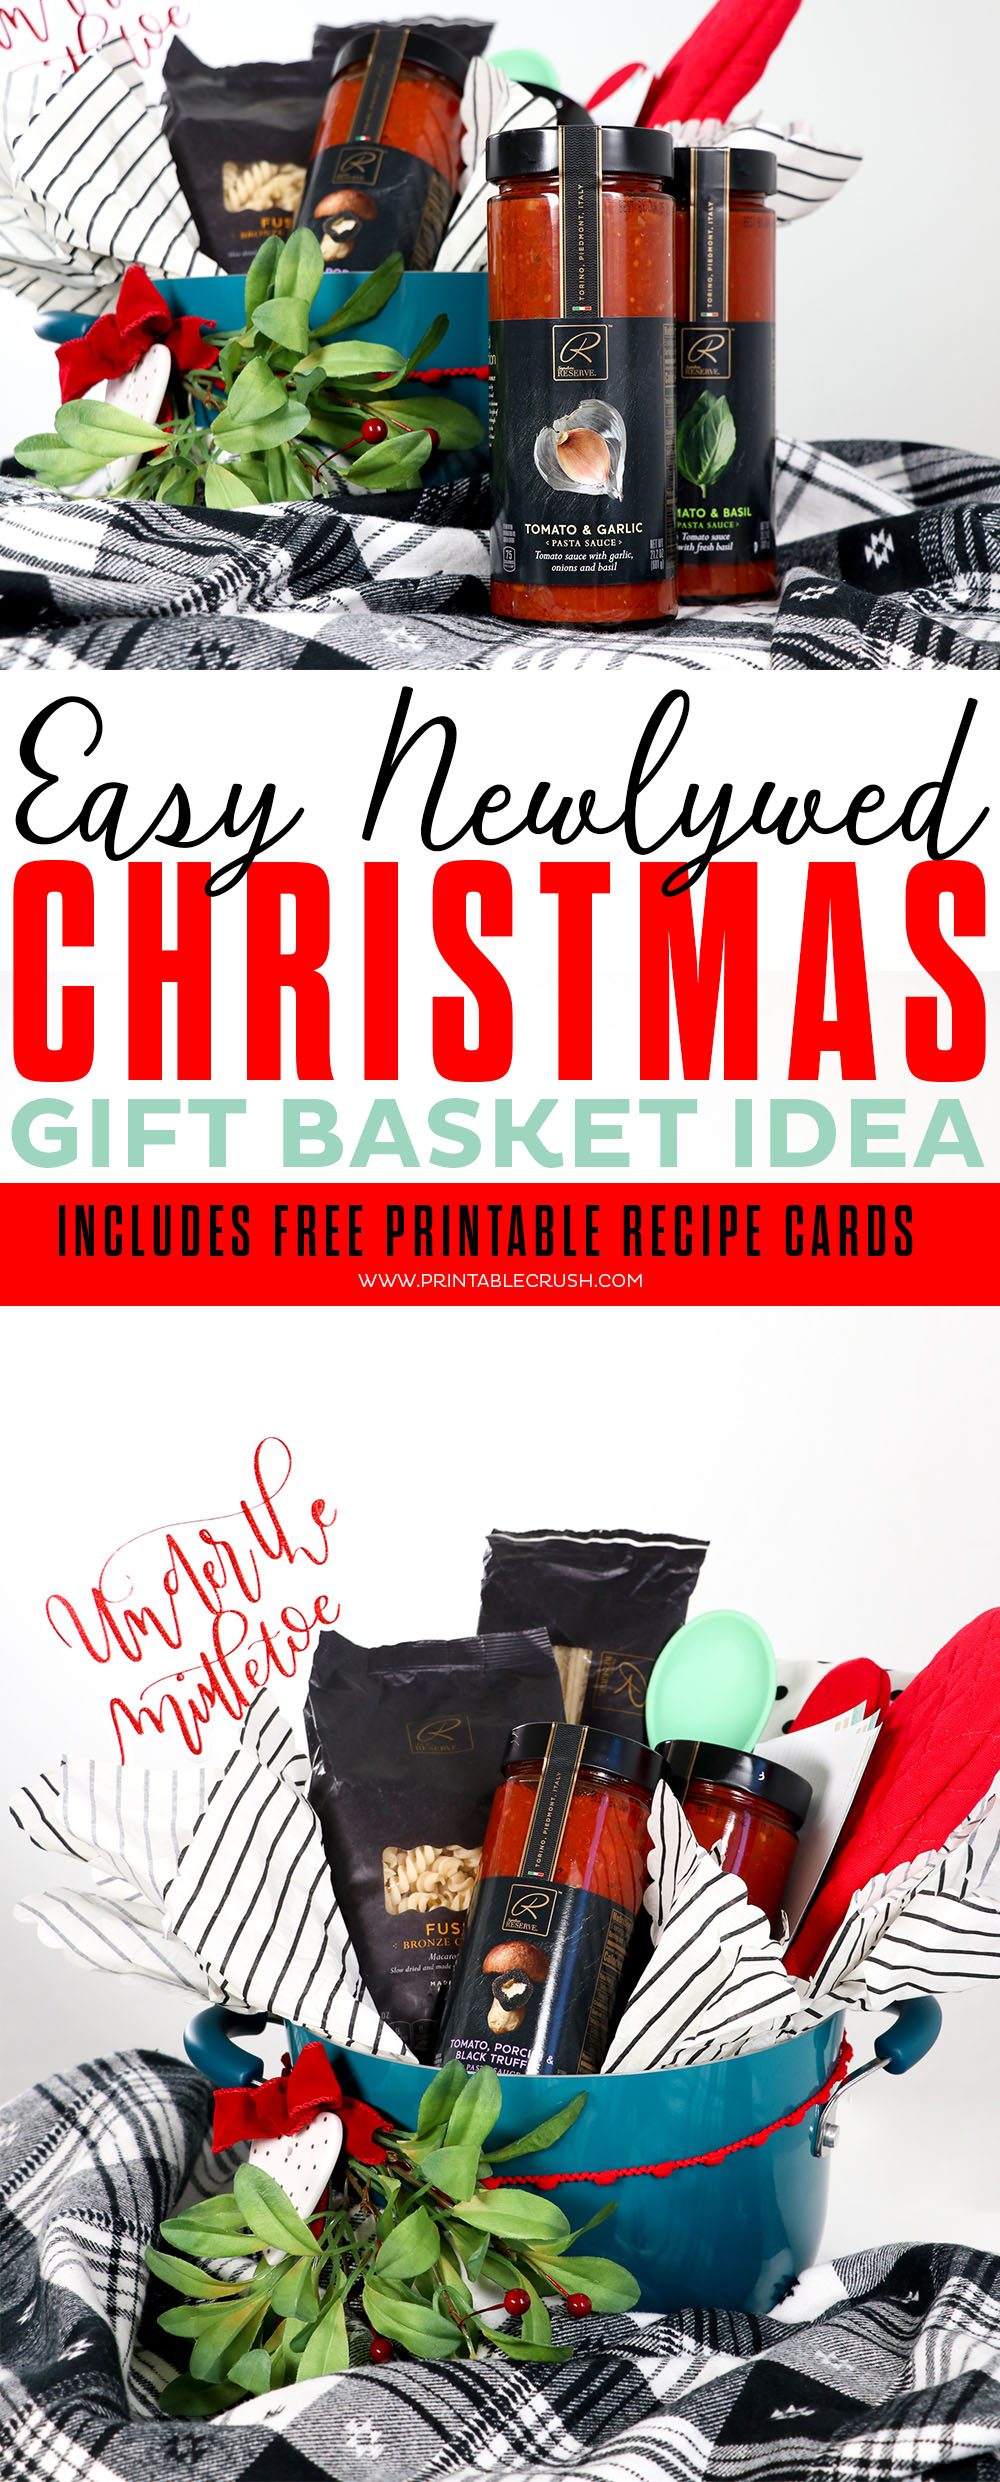 Get the newlyweds something they actually NEED this Christmas with this pretty Newlywed Christmas Gift Basket Idea. Includes FREE printable recipe cards! #weddinggift #christmasgiftidea #freeprintables #signaturereserve #albertsons #safeway #recipecardprintable #giftbasket #christmasgiftbasket via @printablecrush